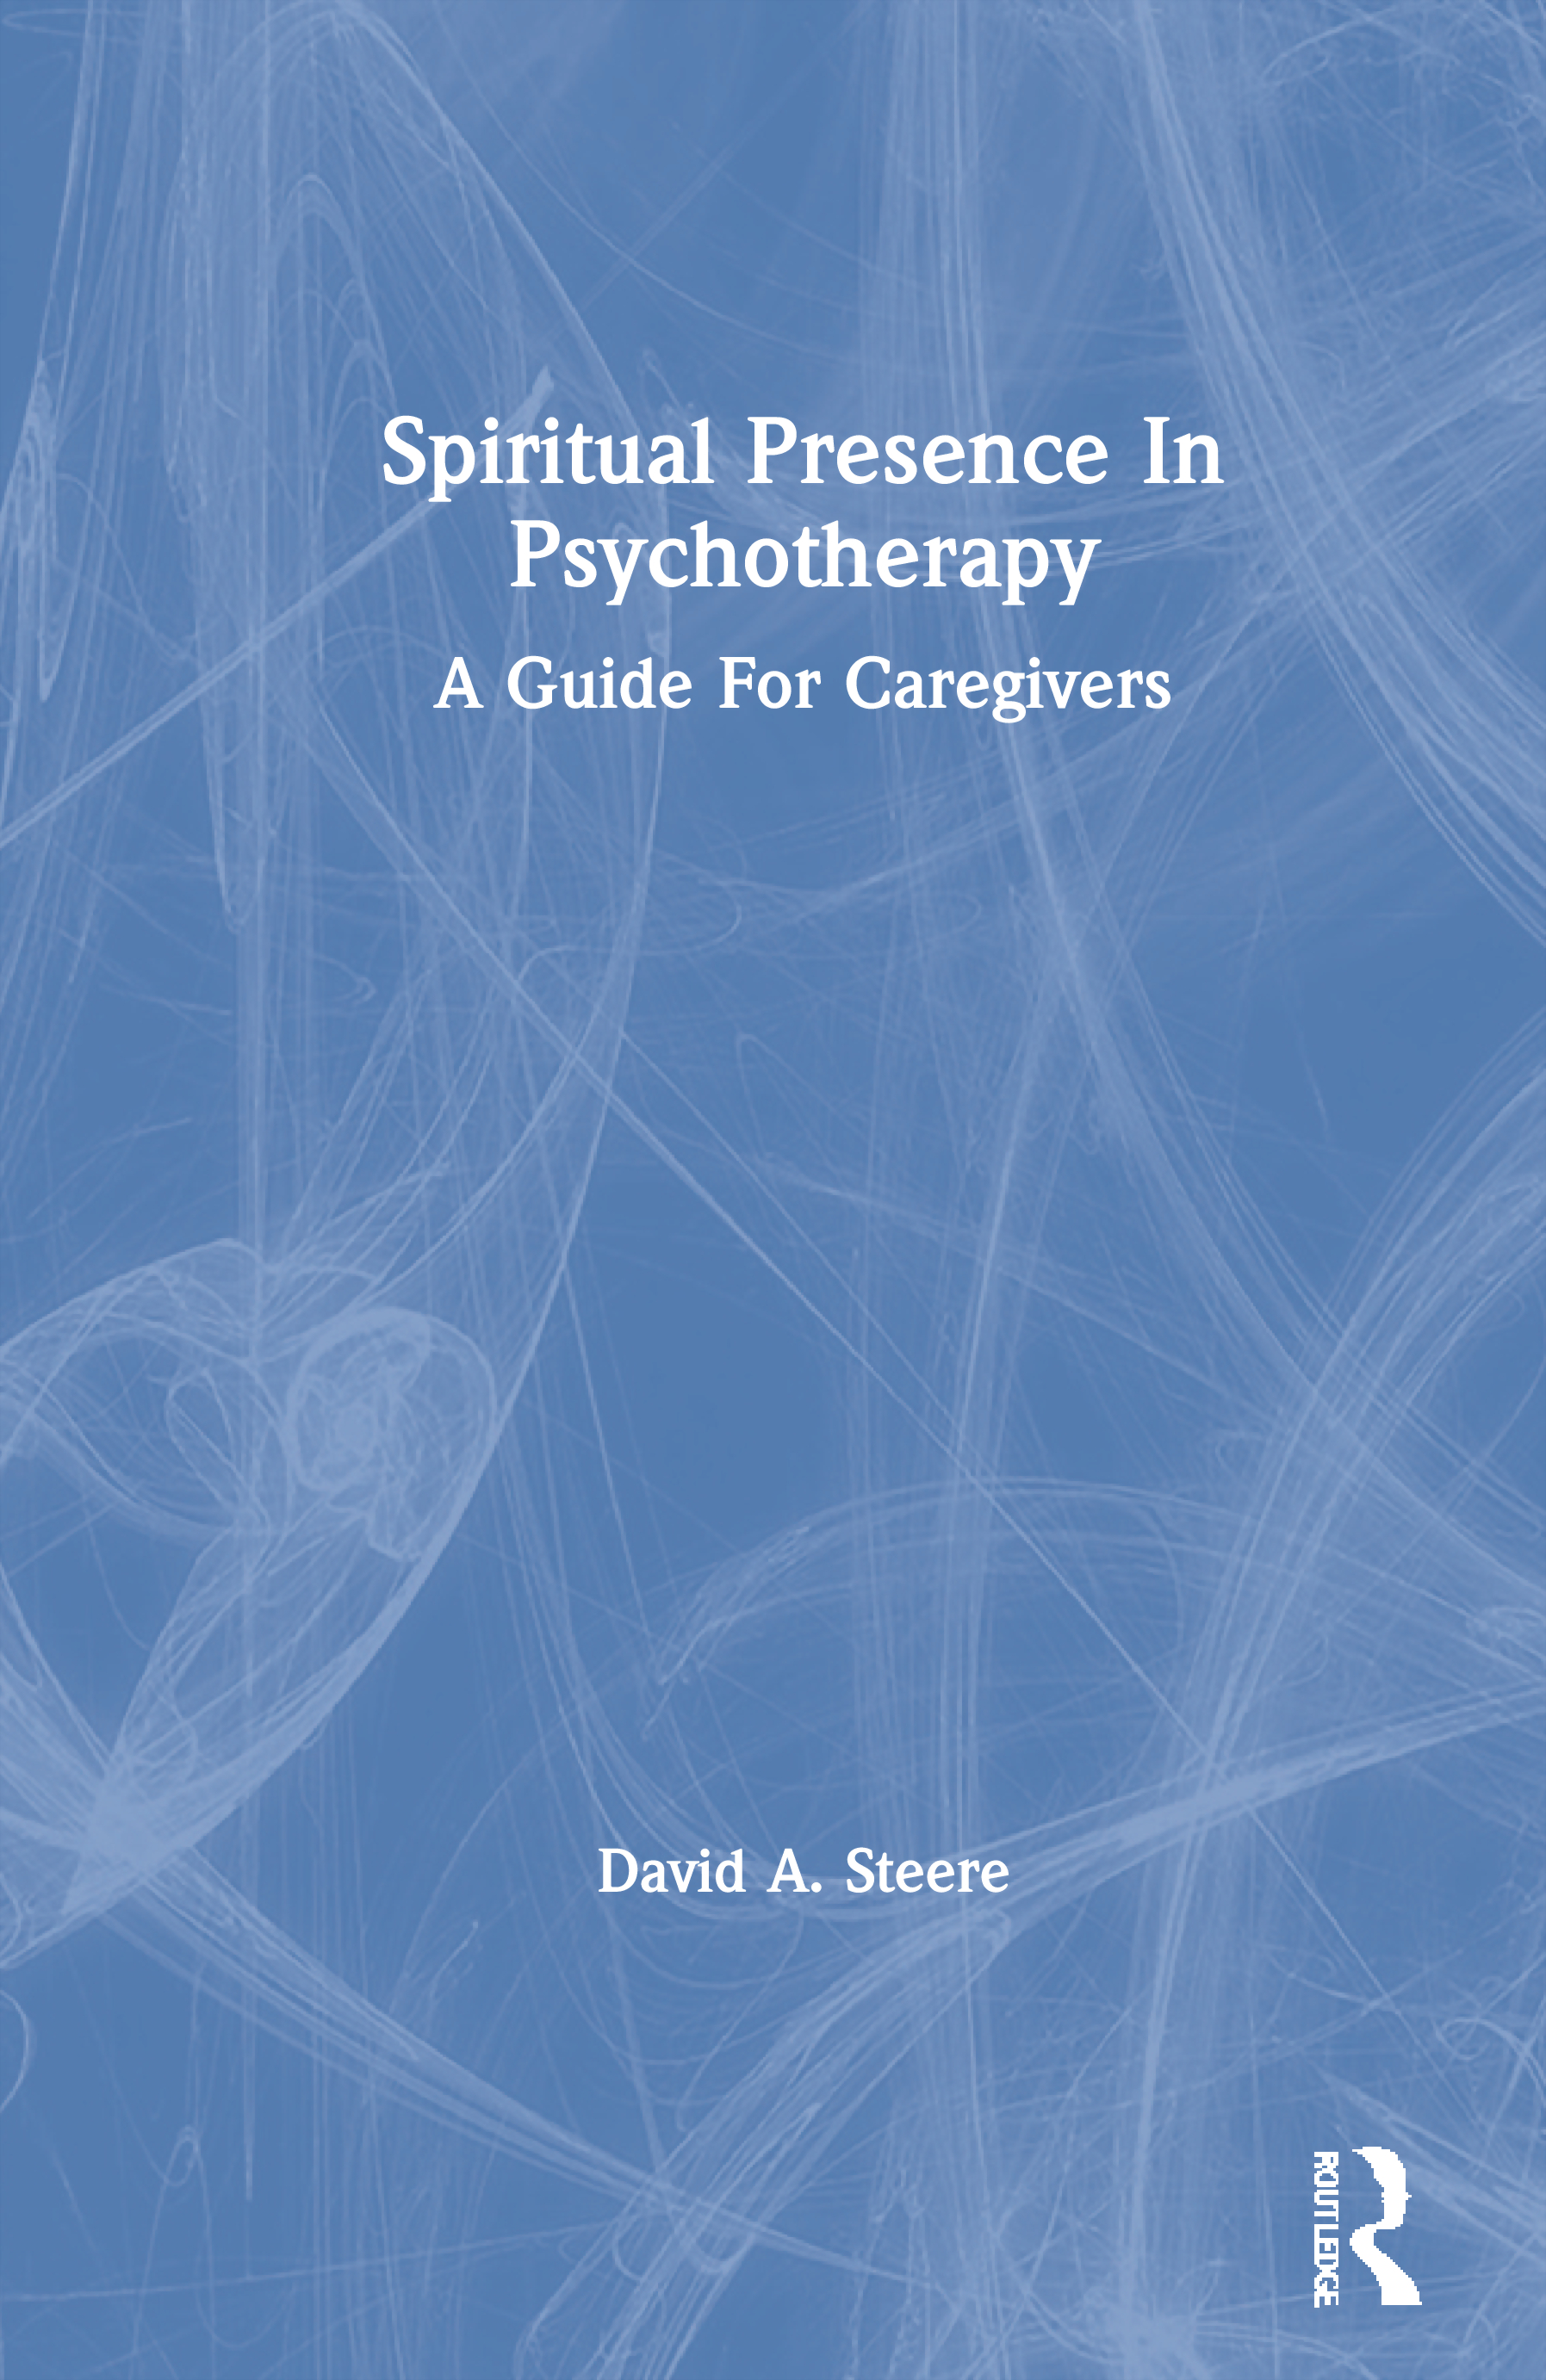 Spiritual Presence In Psychotherapy: A Guide For Caregivers (Hardback) book cover